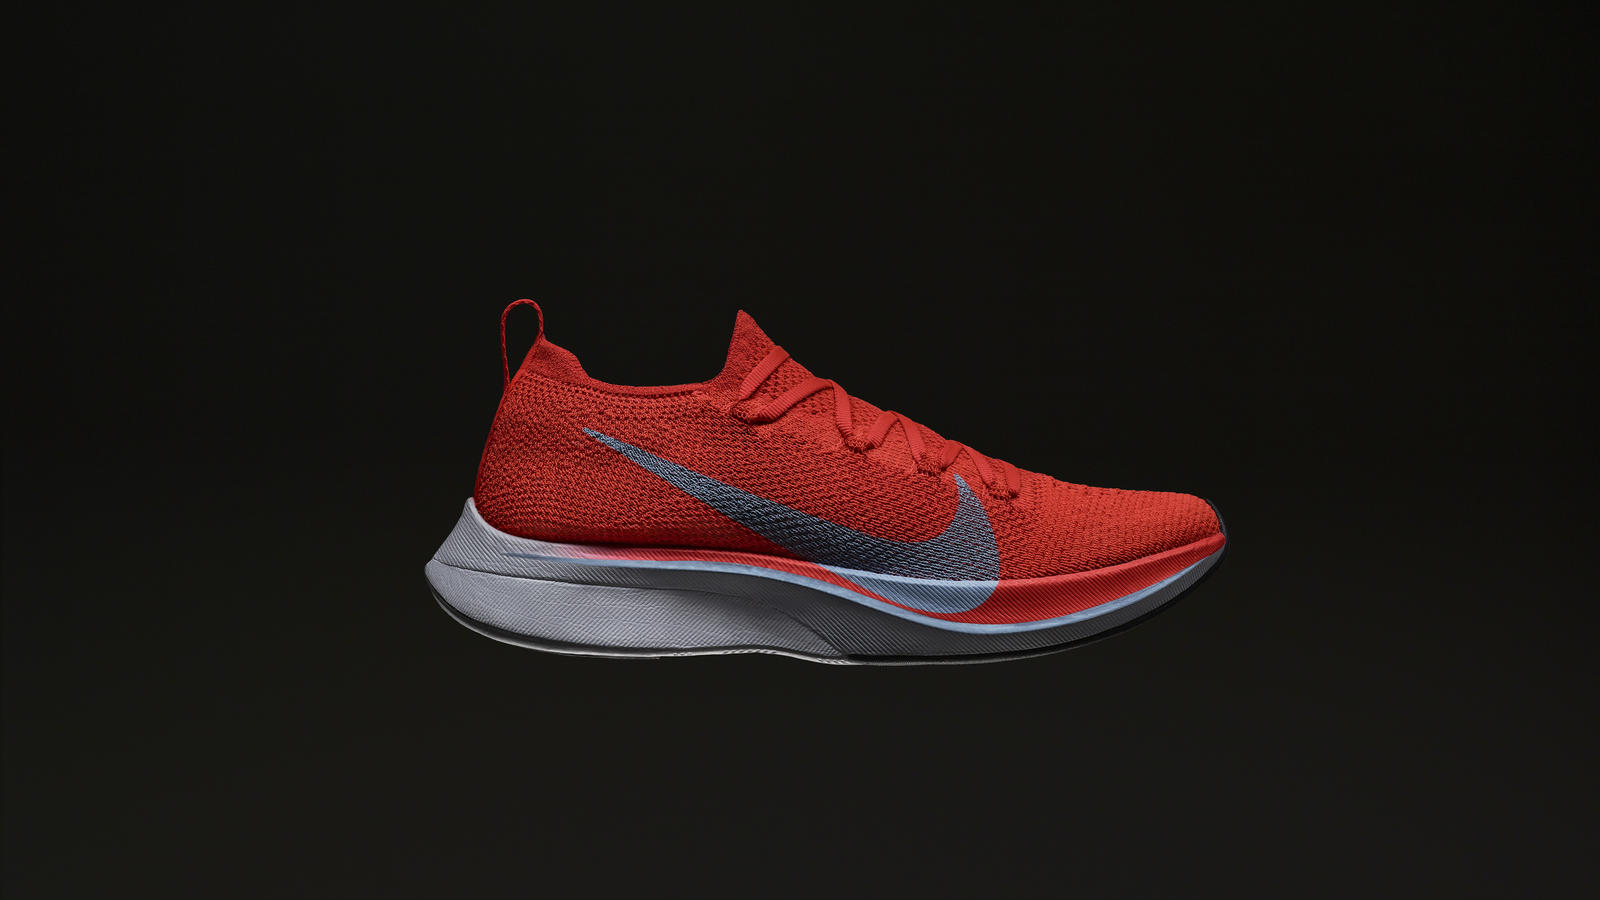 lowest price be0c1 902d6 How to Get the Nike Zoom Vaporfly 4% 1